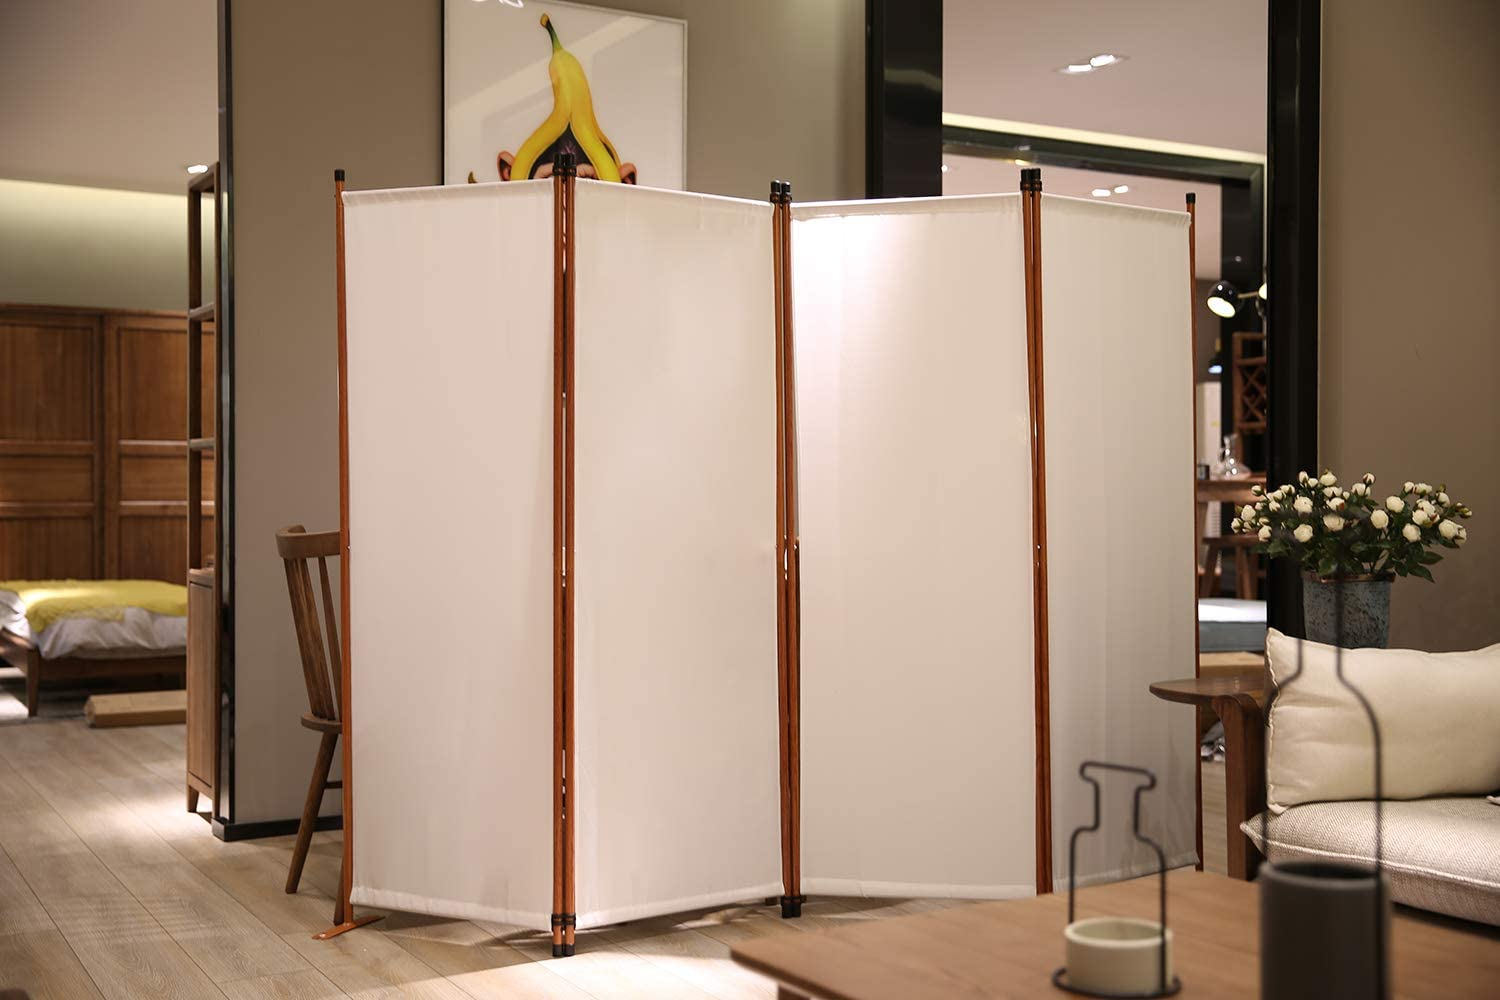 Beige Angel Living Protective Screens Room Divider Screen with 4 Panels Folding Room Partition Wall Furniture Outdoor Screens for Patio Privacy